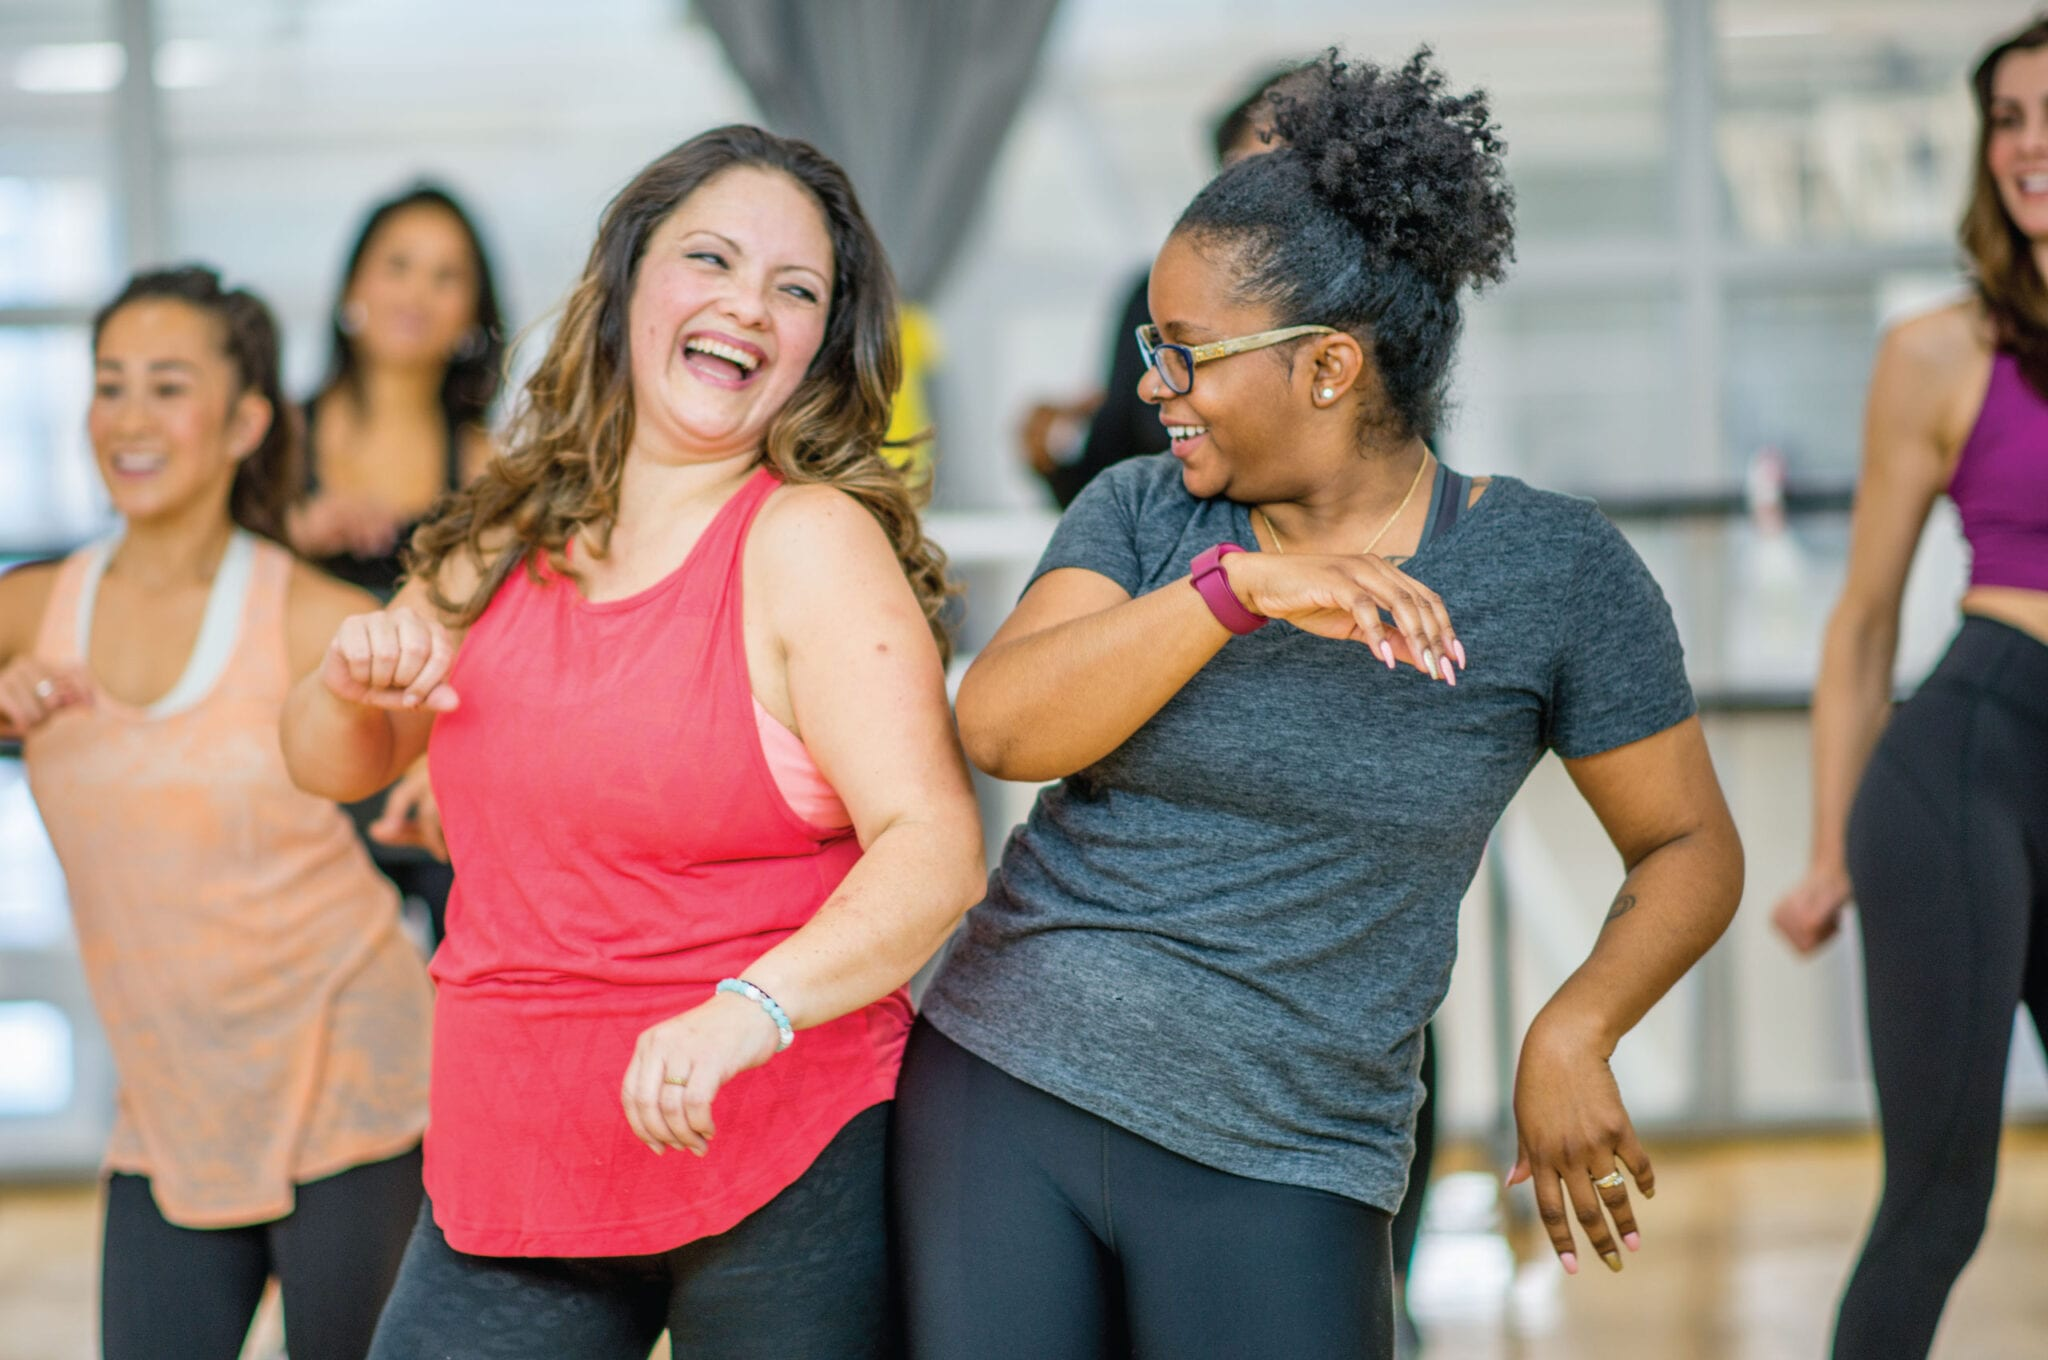 Women smiling in a fitness class